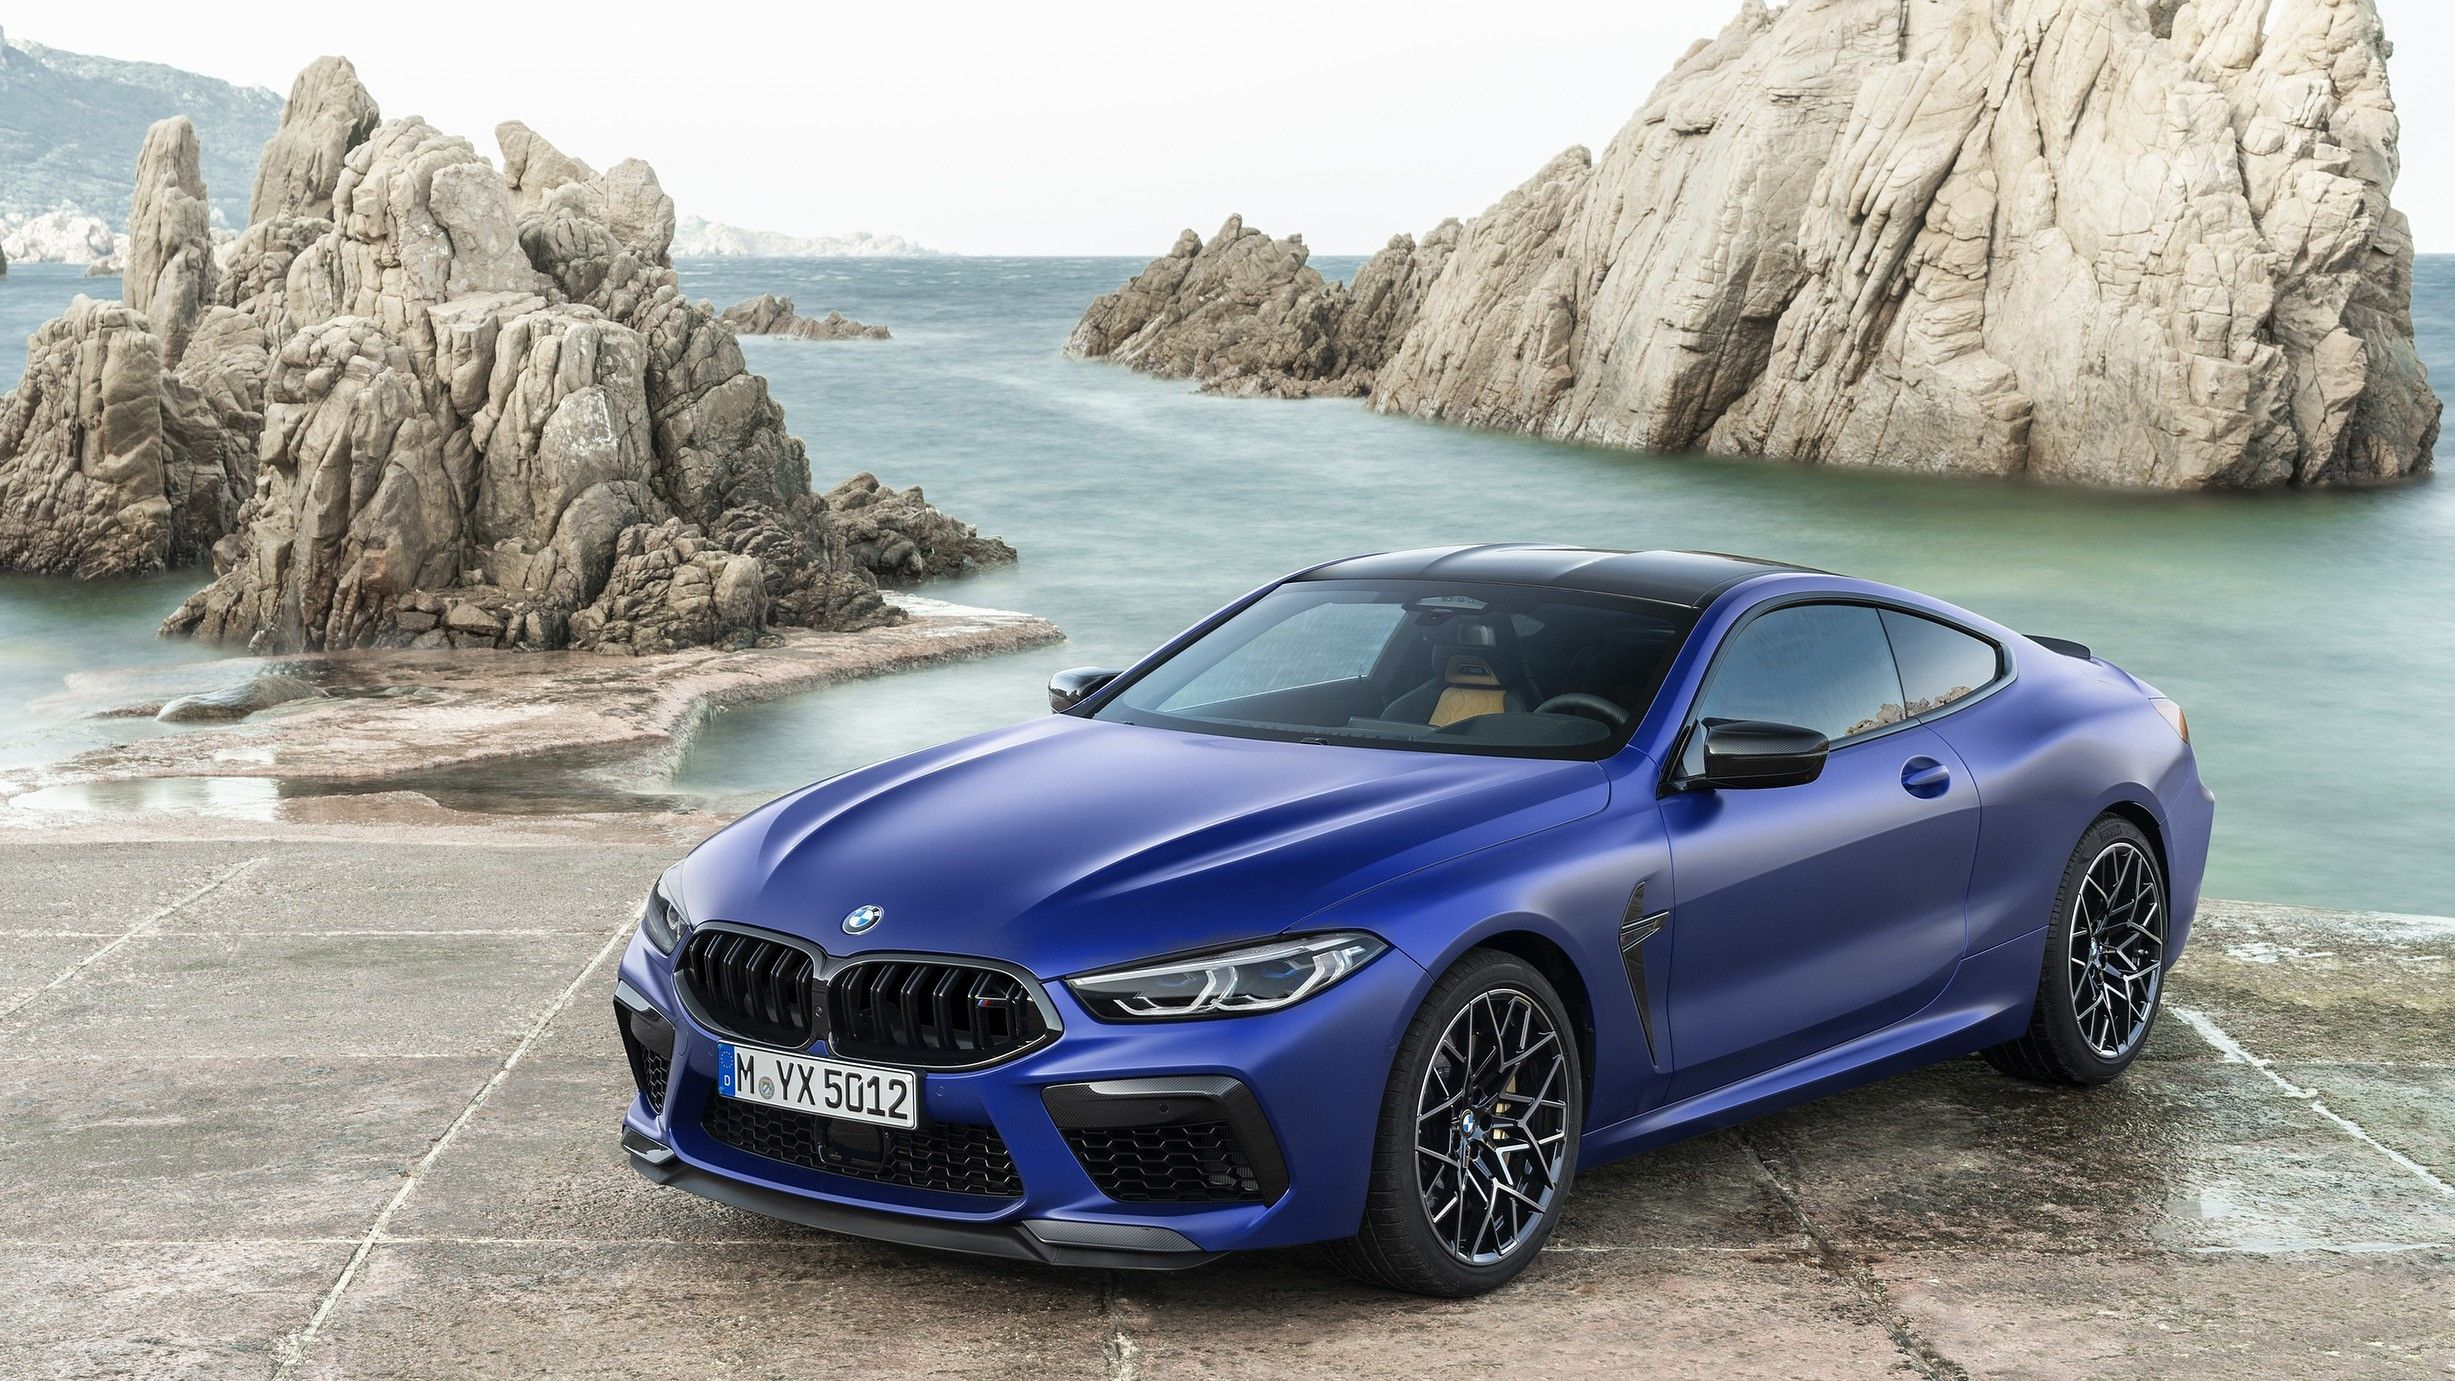 2021 BMW M8 review: Trims, Features, Price, Performance, MPG ...